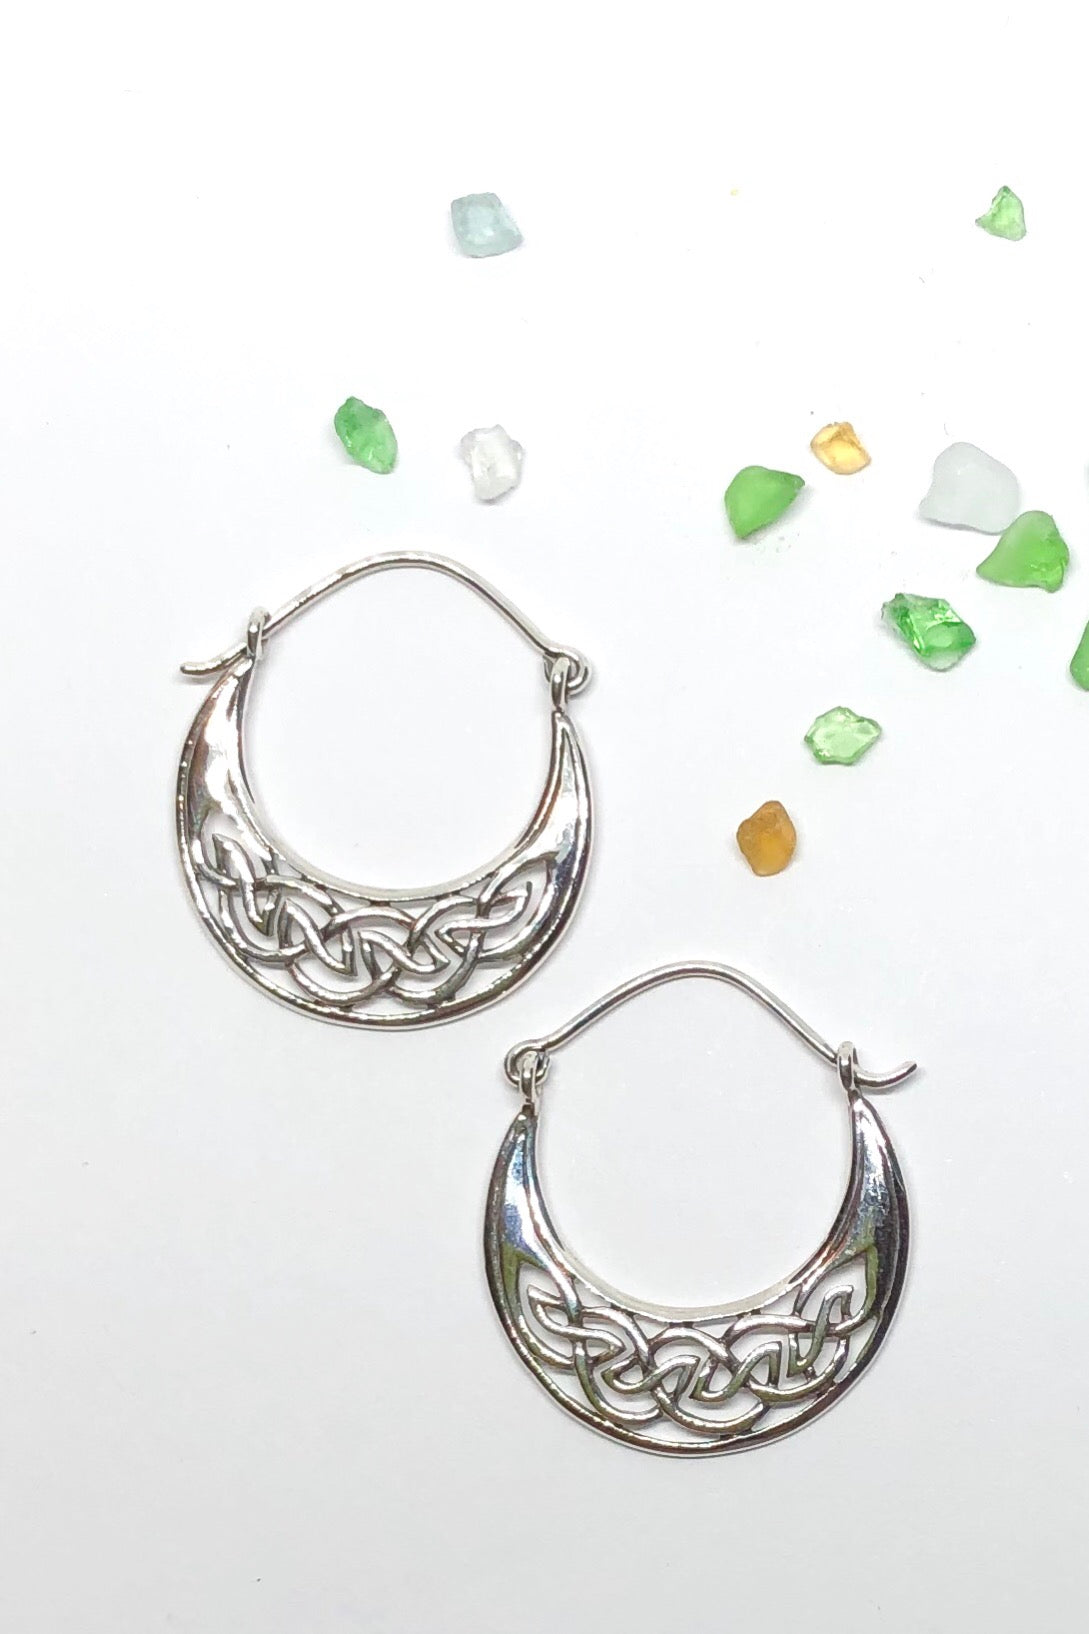 The Earrings Cay Celtic Silver Hoops are 925 solid silver, exotic hoop design in silver, 3 cm in length, 2.6 cm wide.